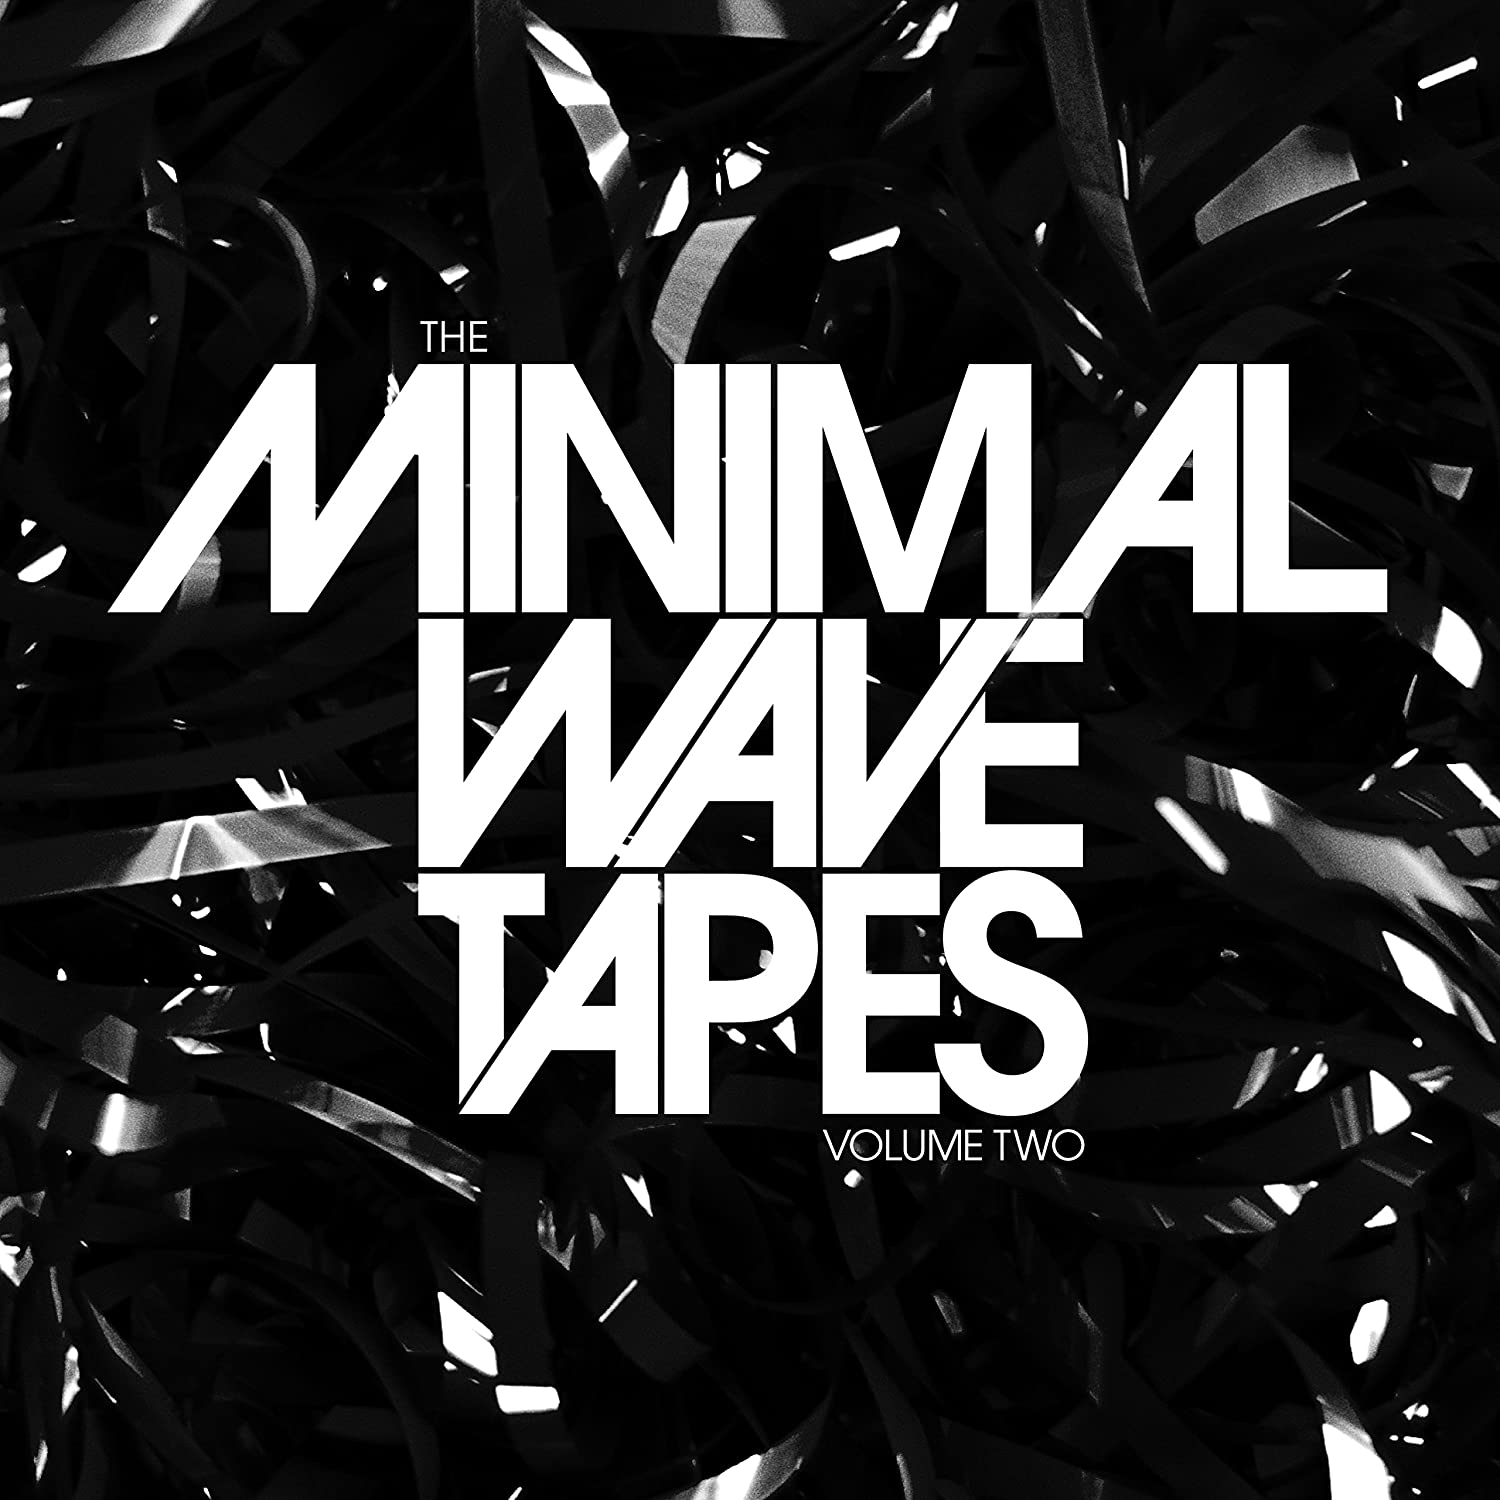 VA - The Minimal Wave Tapes: Volume Two